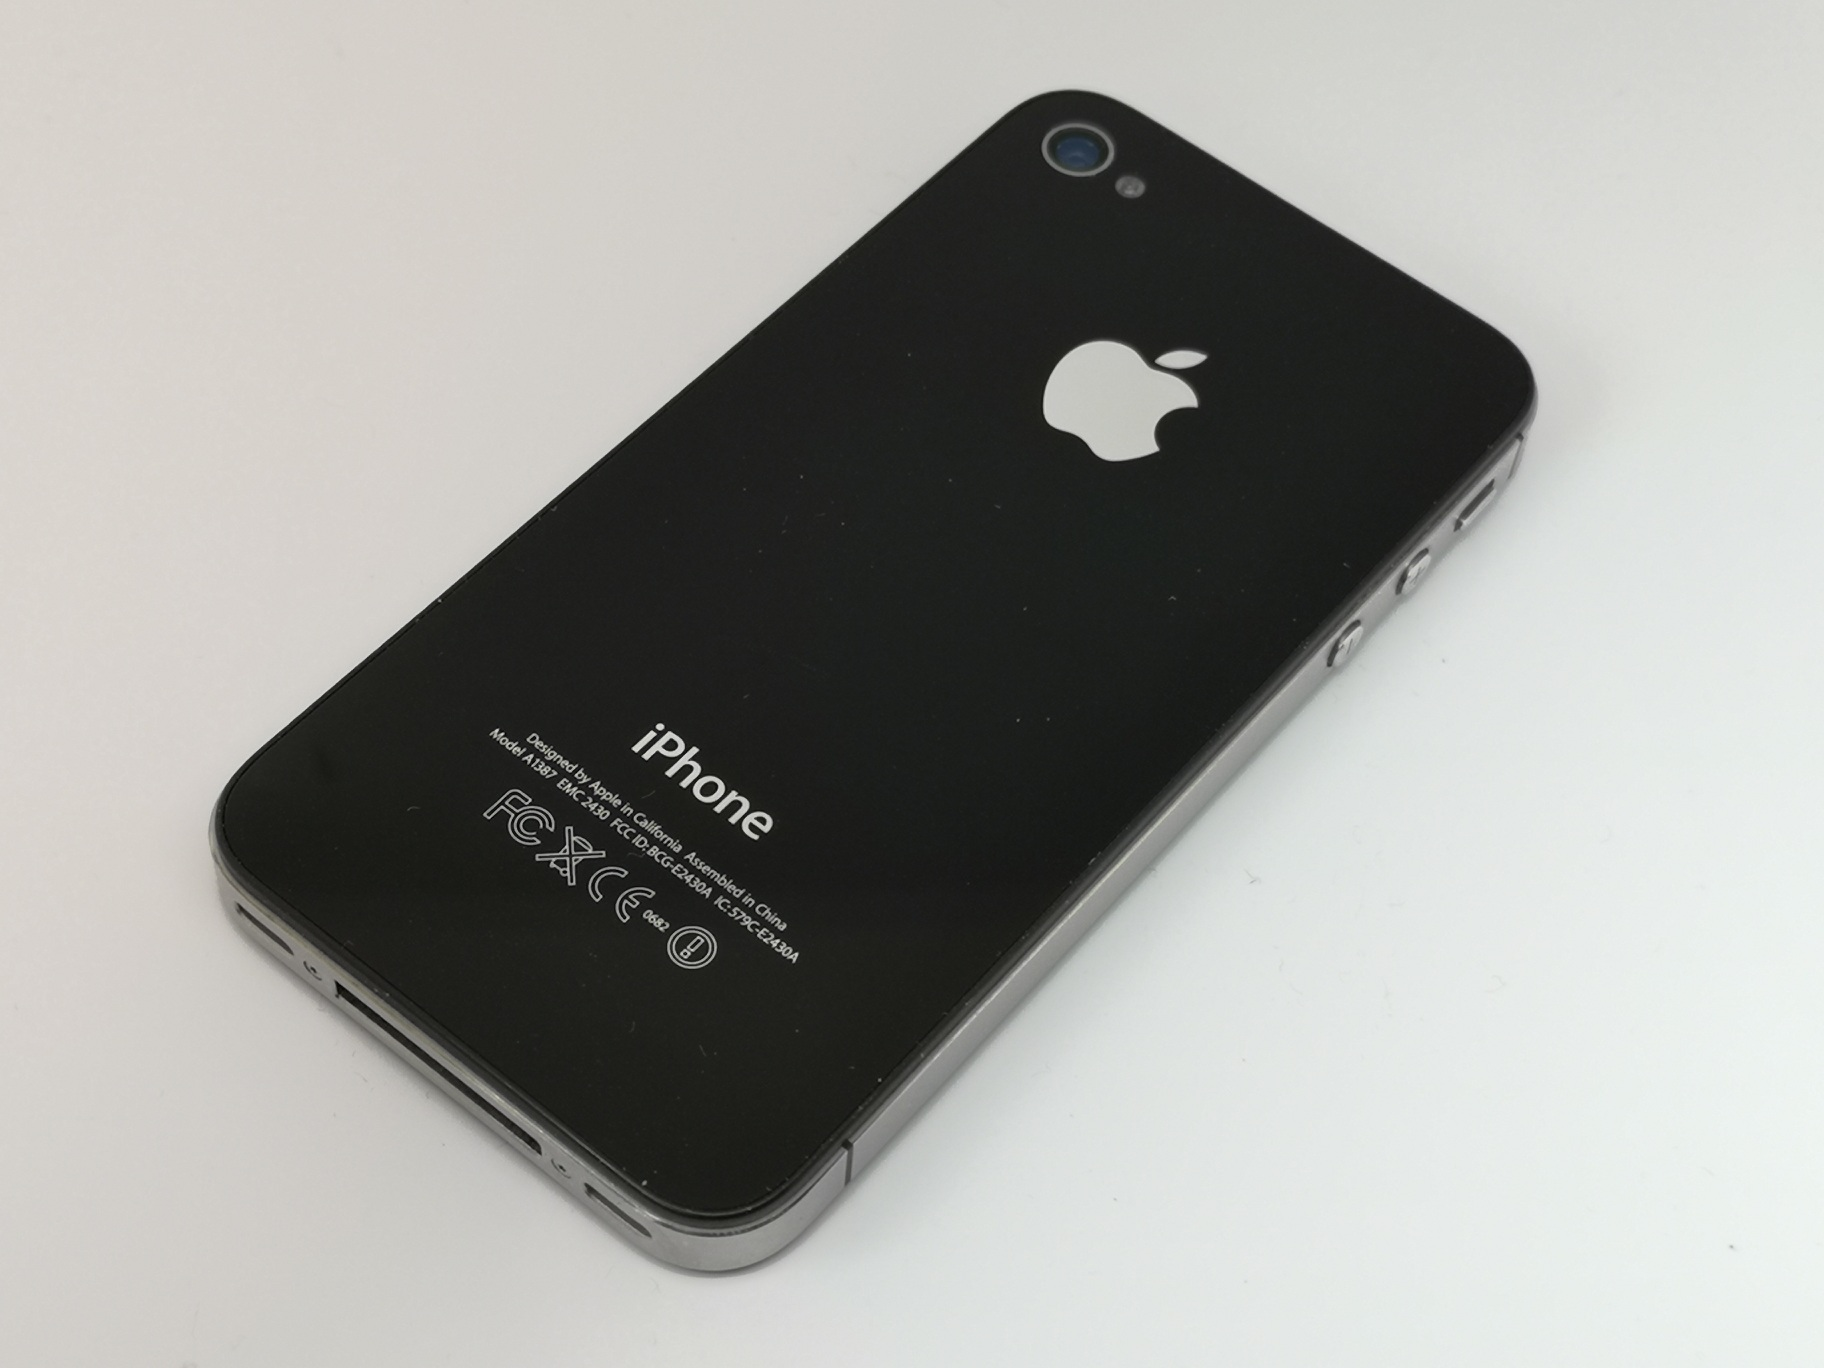 Apple iPhone 4S Review - Incremental Phone Upgrade